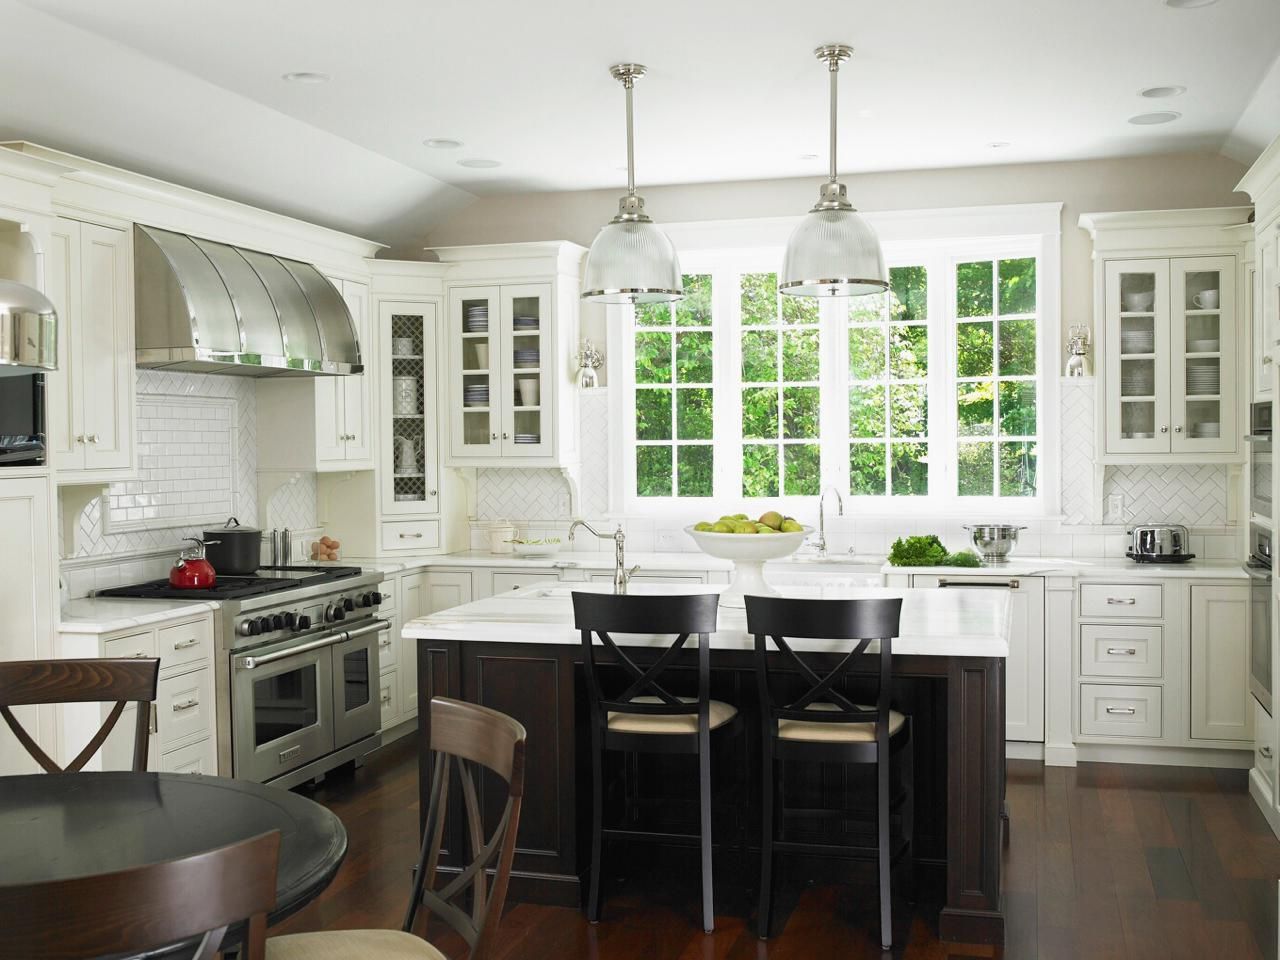 kitchen remodels with white cabinets pictures roy home. Black Bedroom Furniture Sets. Home Design Ideas